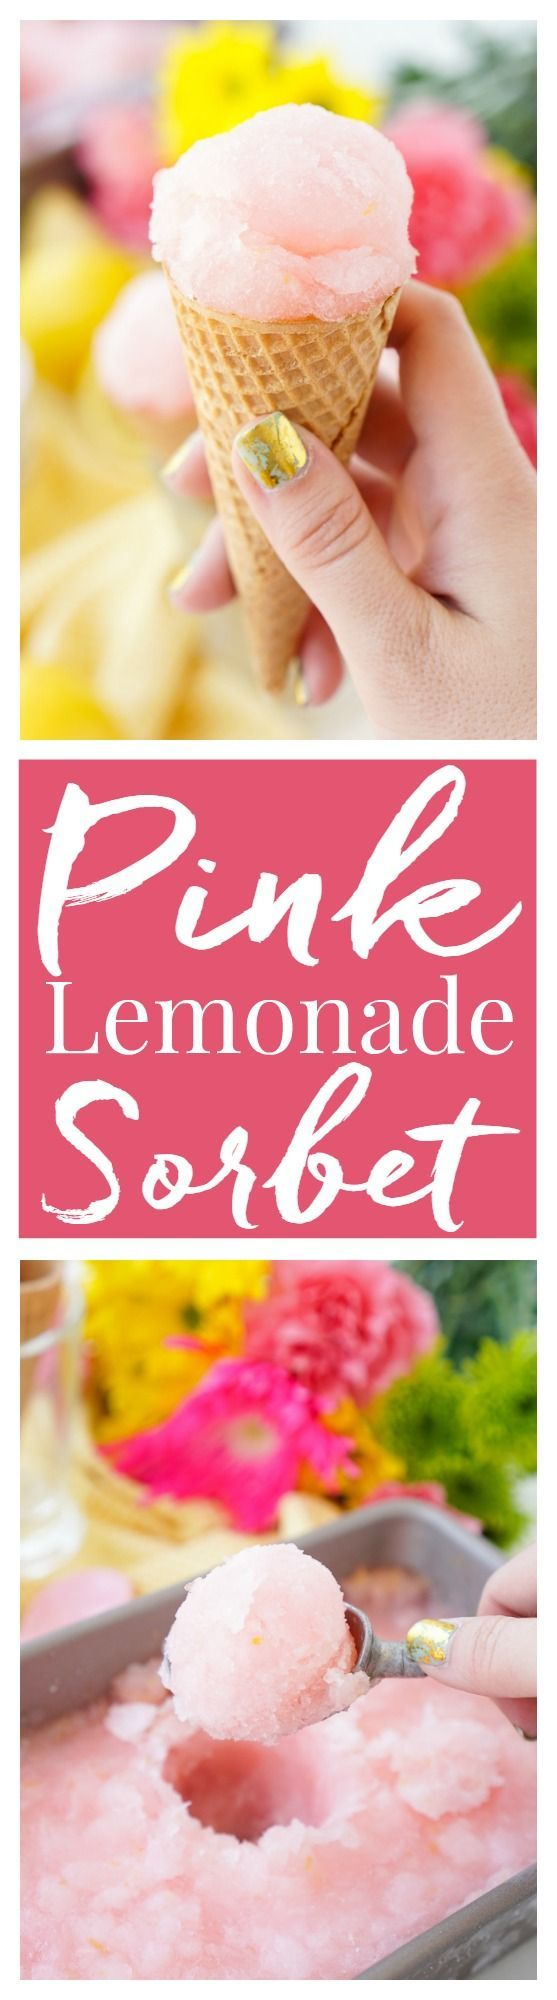 This Pink Lemonade Sorbet is a vibrant and fun no-churn summer treat. Just a little bit of hands-on work and let your freezer do the rest! (Pink Bake Goods)